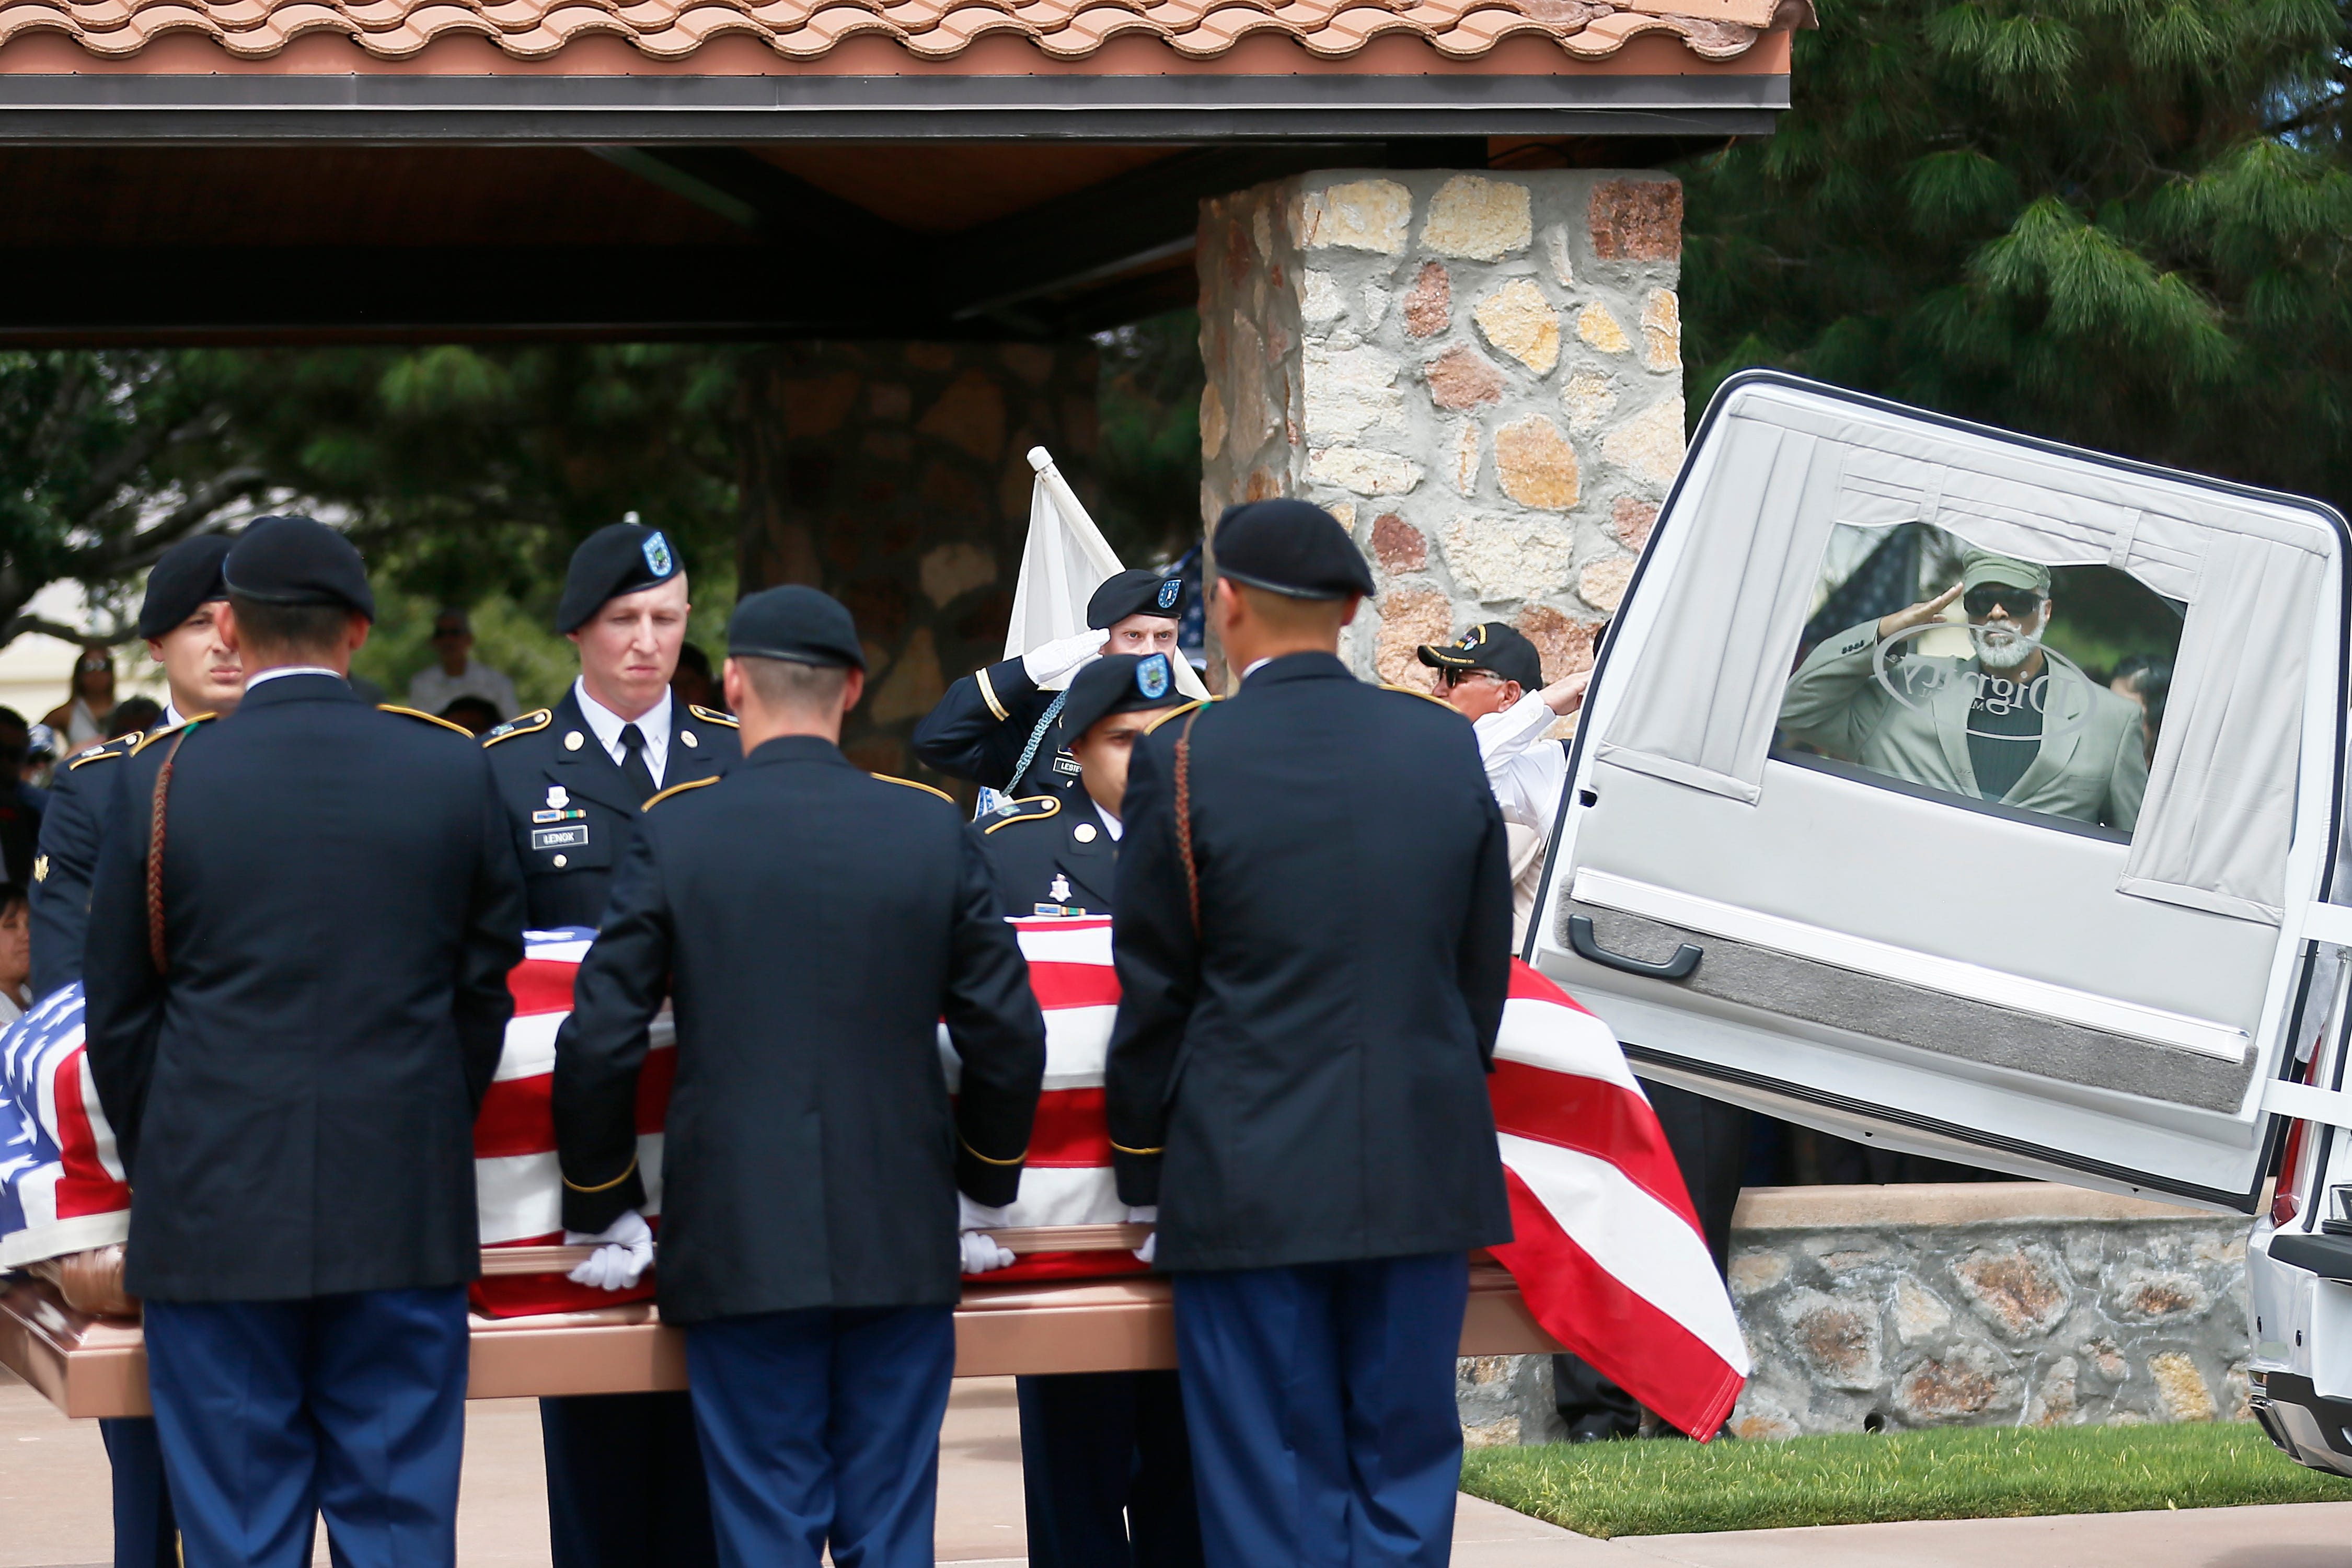 Family and friends of Arturo Benavides gather Tuesday, Aug. 13, to pay their respects at Fort Bliss National Cemetery. Benavides was a decorated U.S. Army Veteran.